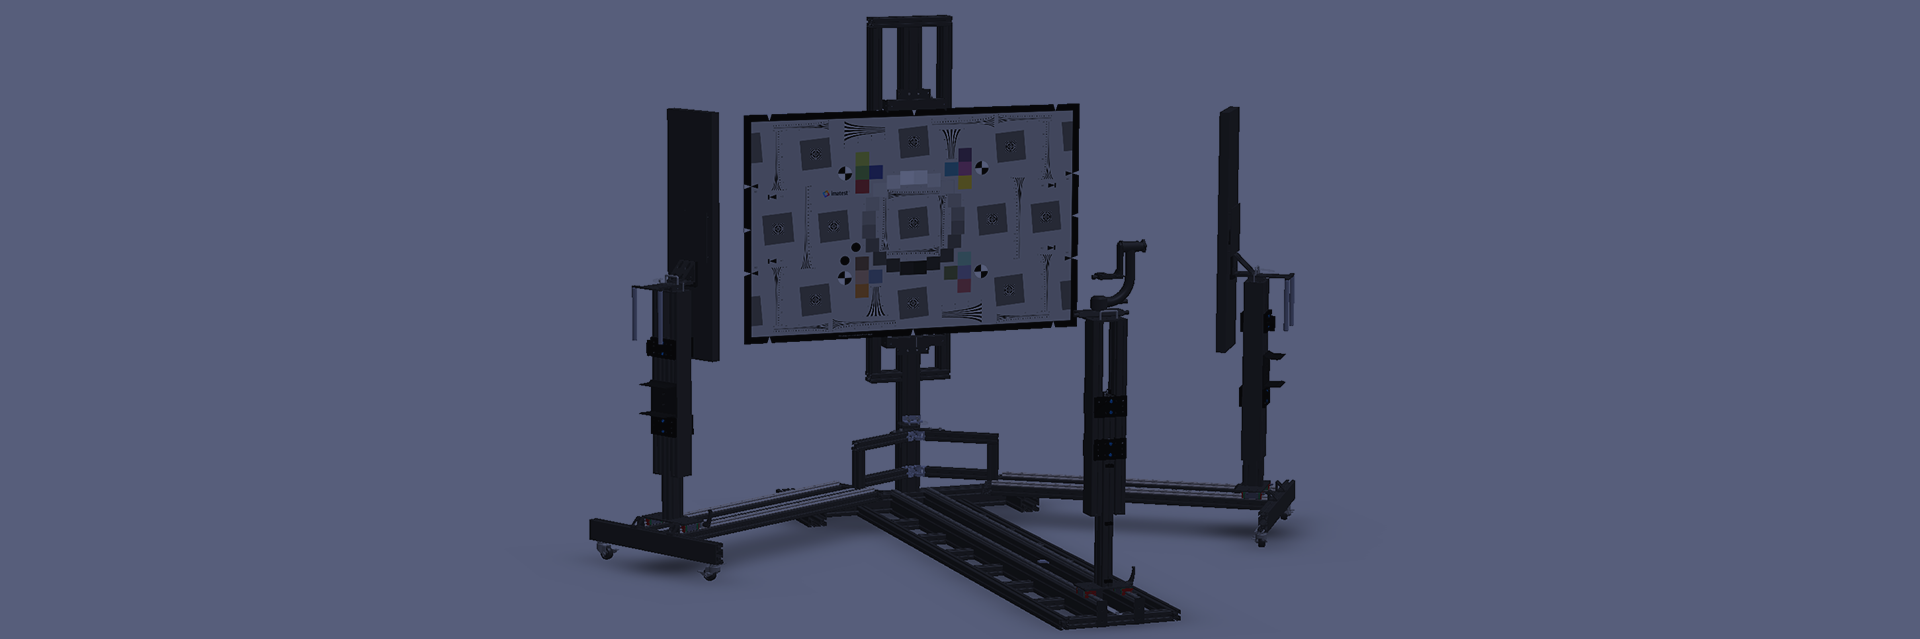 Imatest Modular Test Stand and Reflective Module